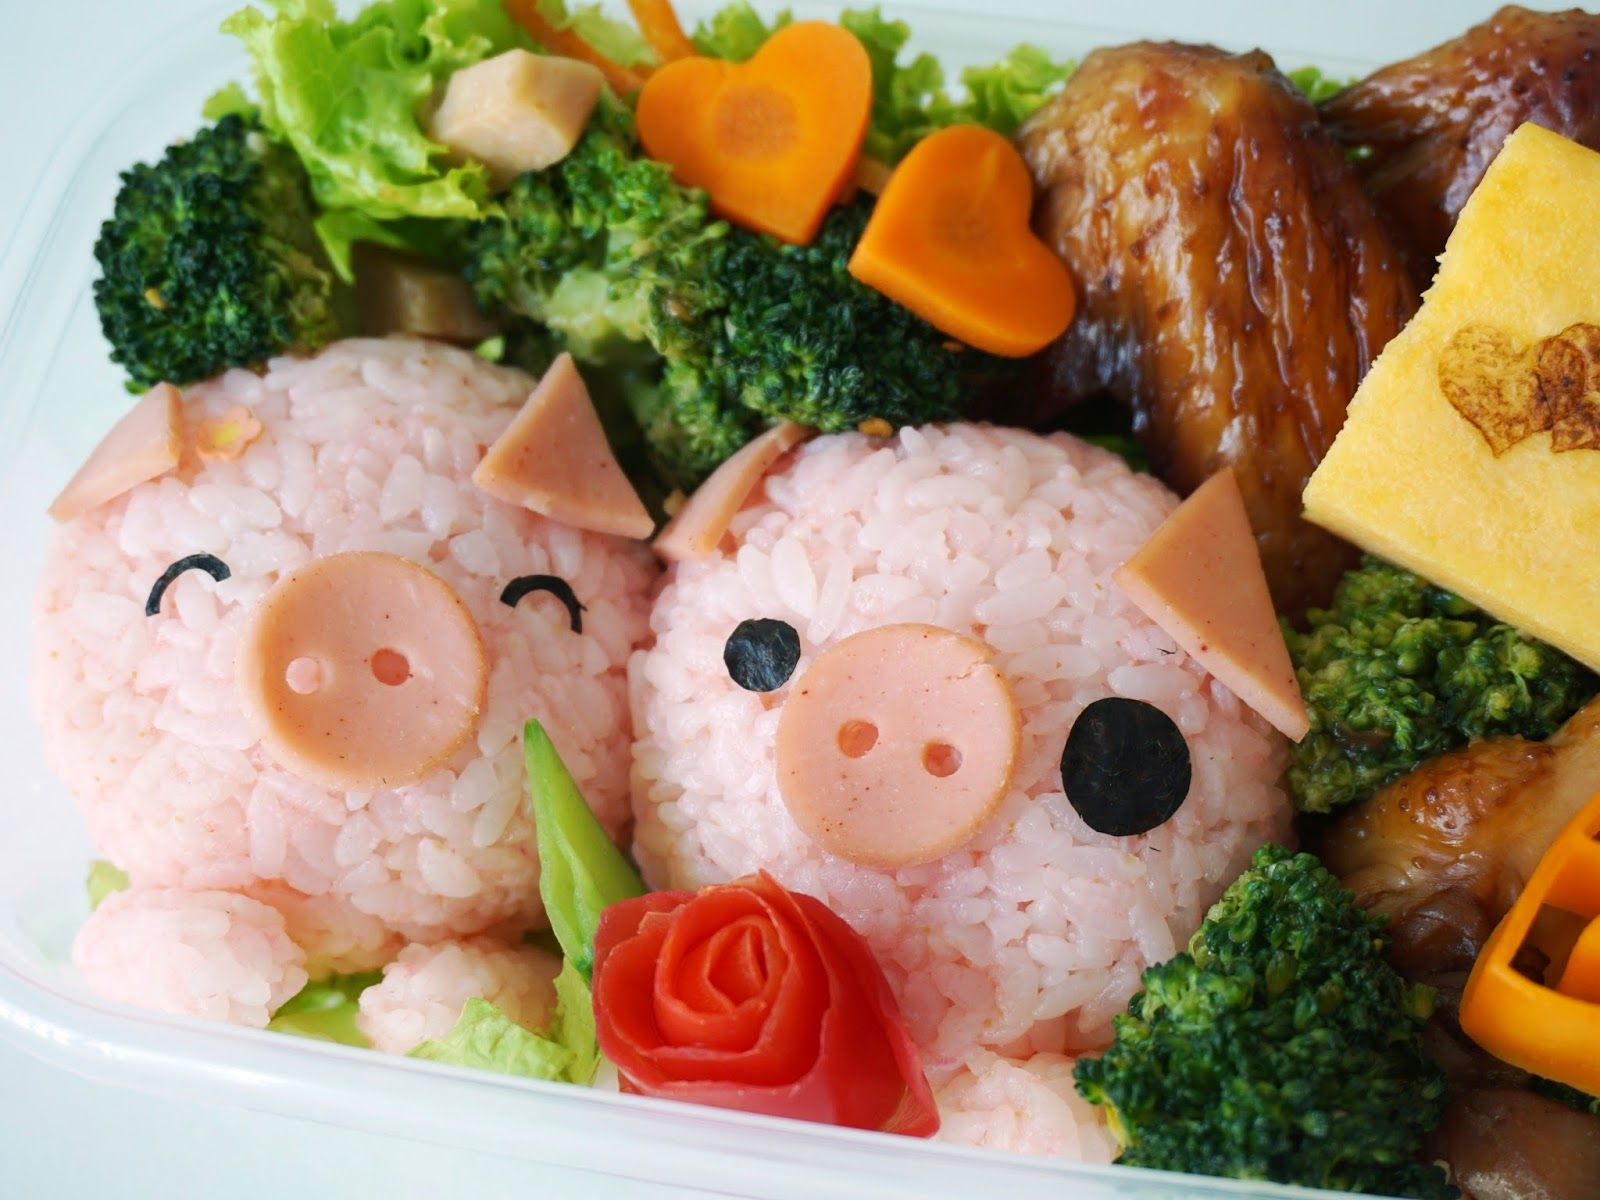 Kawaii Lunch Wallpapers Top Free Kawaii Lunch Backgrounds Wallpaperaccess